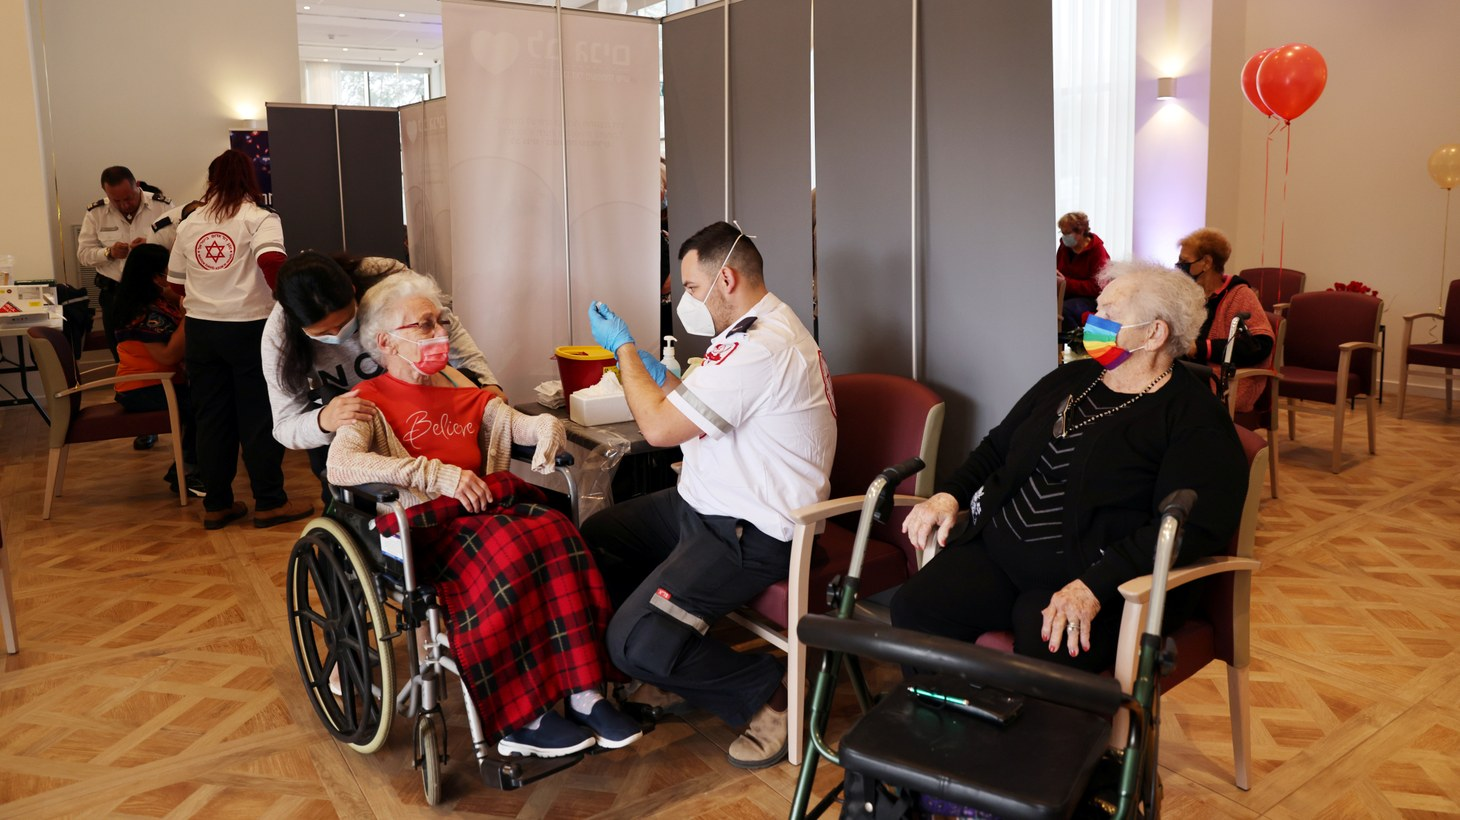 Residents of an assisted living facility receive their vaccination booster shots against the coronavirus disease (COVID-19) during a party celebrating the residents receiving their second dose of the vaccine, in Netanya, Israel, January 19, 2021.